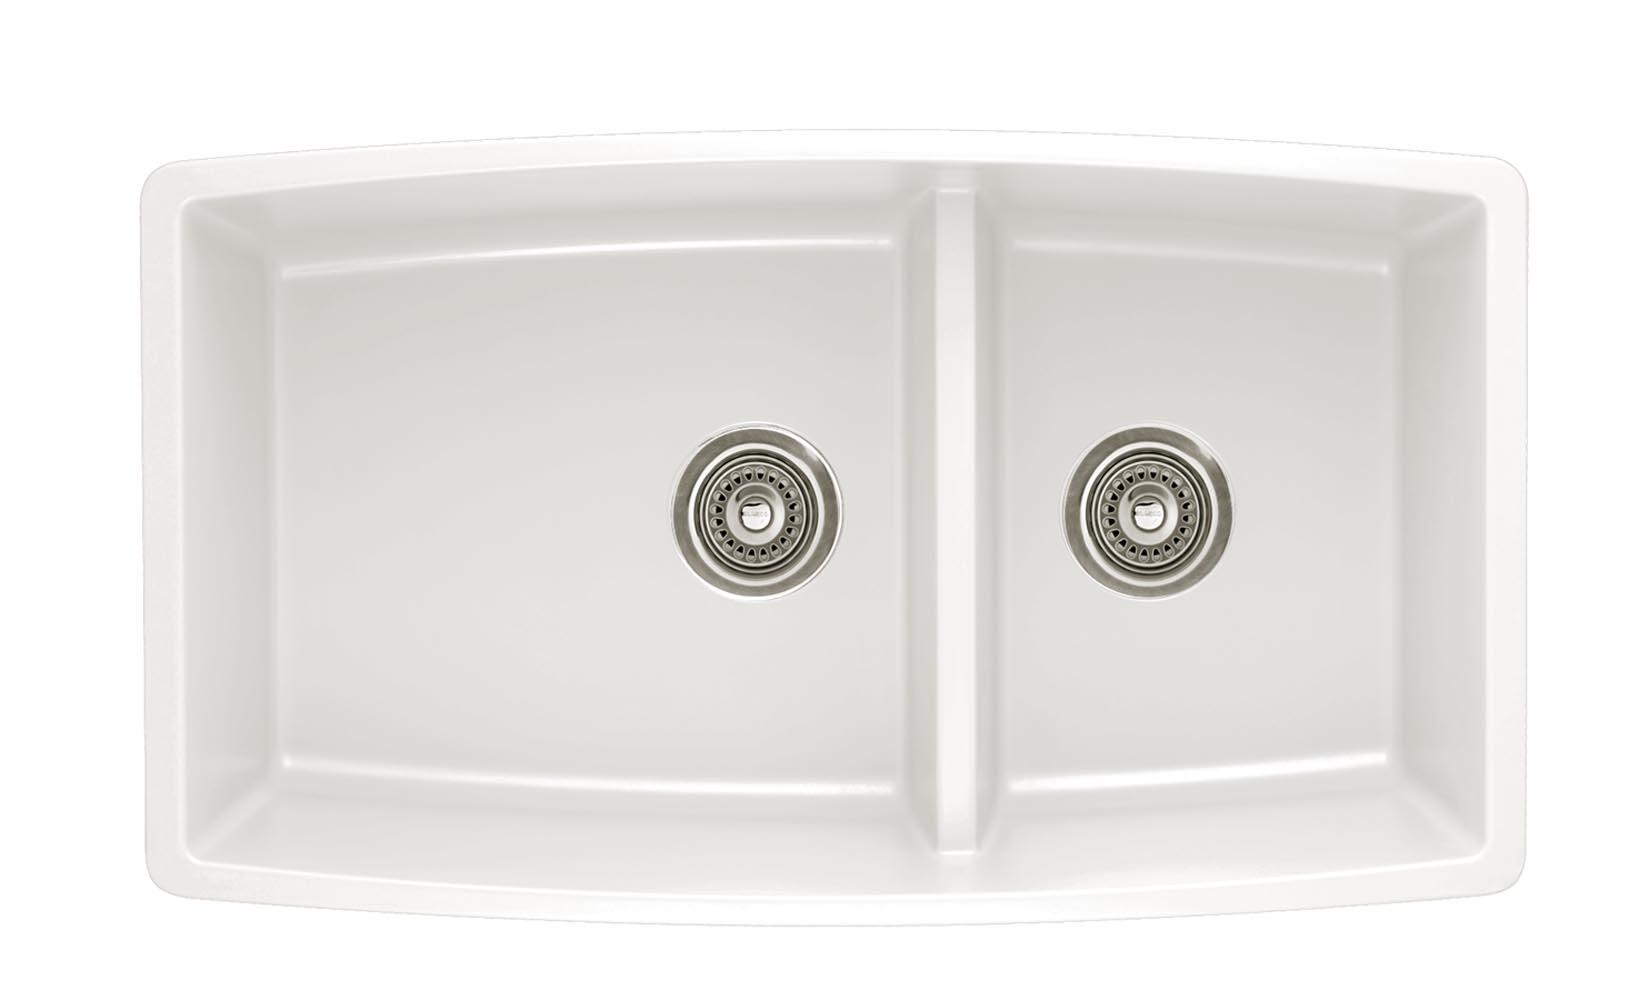 Blanco 441310 kitchen sink appliances connection for Blancoamerica com kitchen sinks